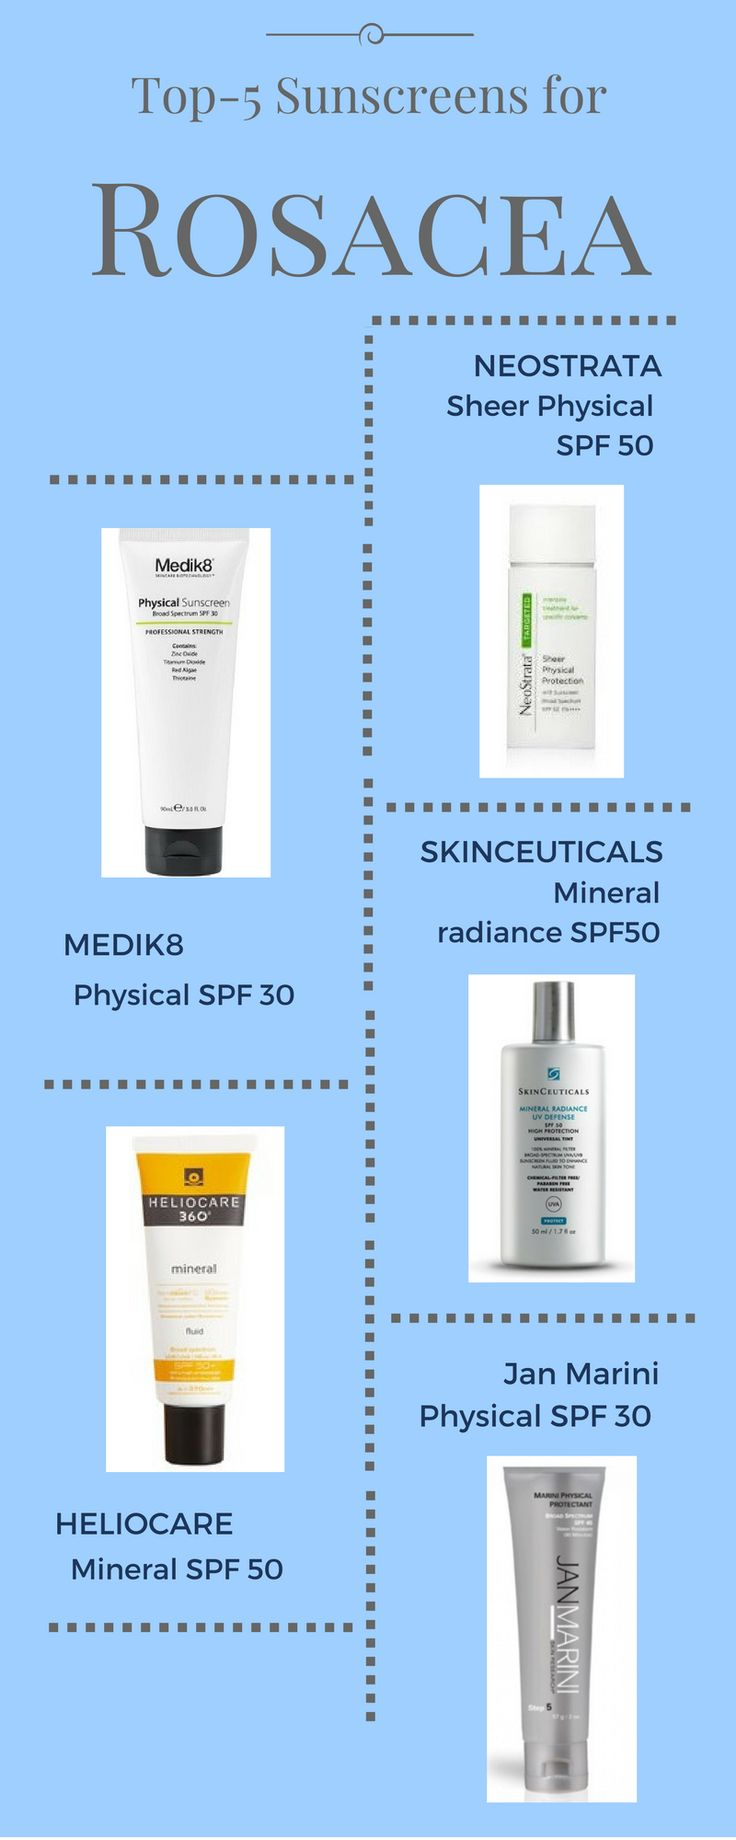 PROTECT, PROTECT, PROTECT! The most important step when you suffer with Rosacea. Our Skincare Nurse, Andrea suggests these top 5 SPF's.